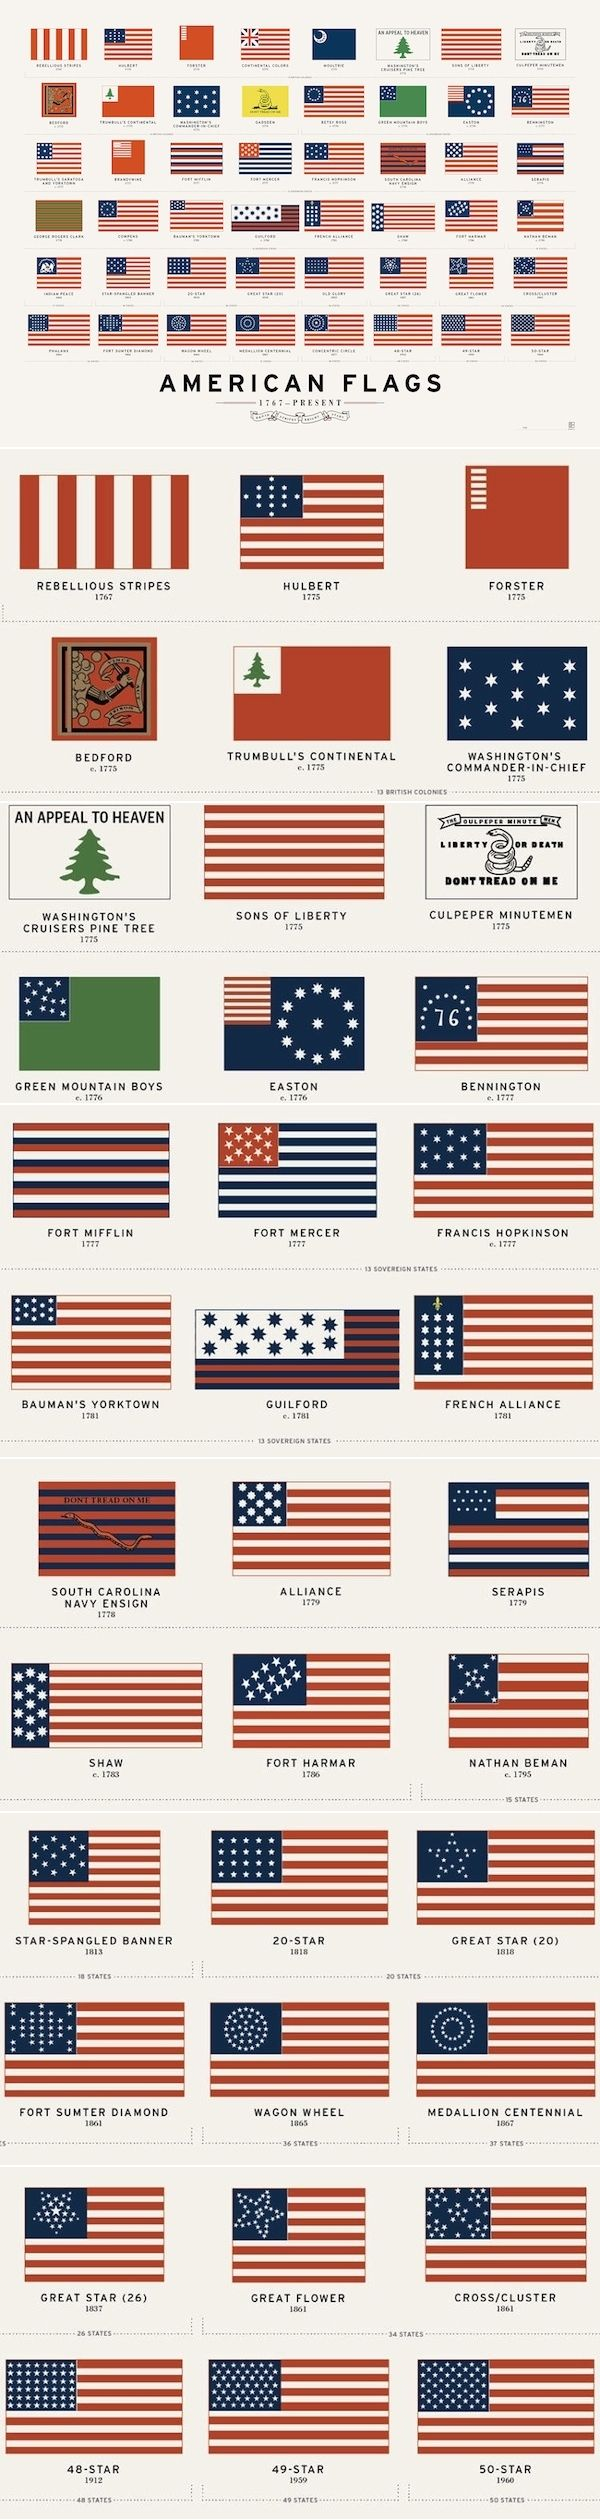 American Flags as USA acquired gained states of adding to original 13 colonies that are now states the original 13 colonies usa flag added stars for every state /colony added your proof!